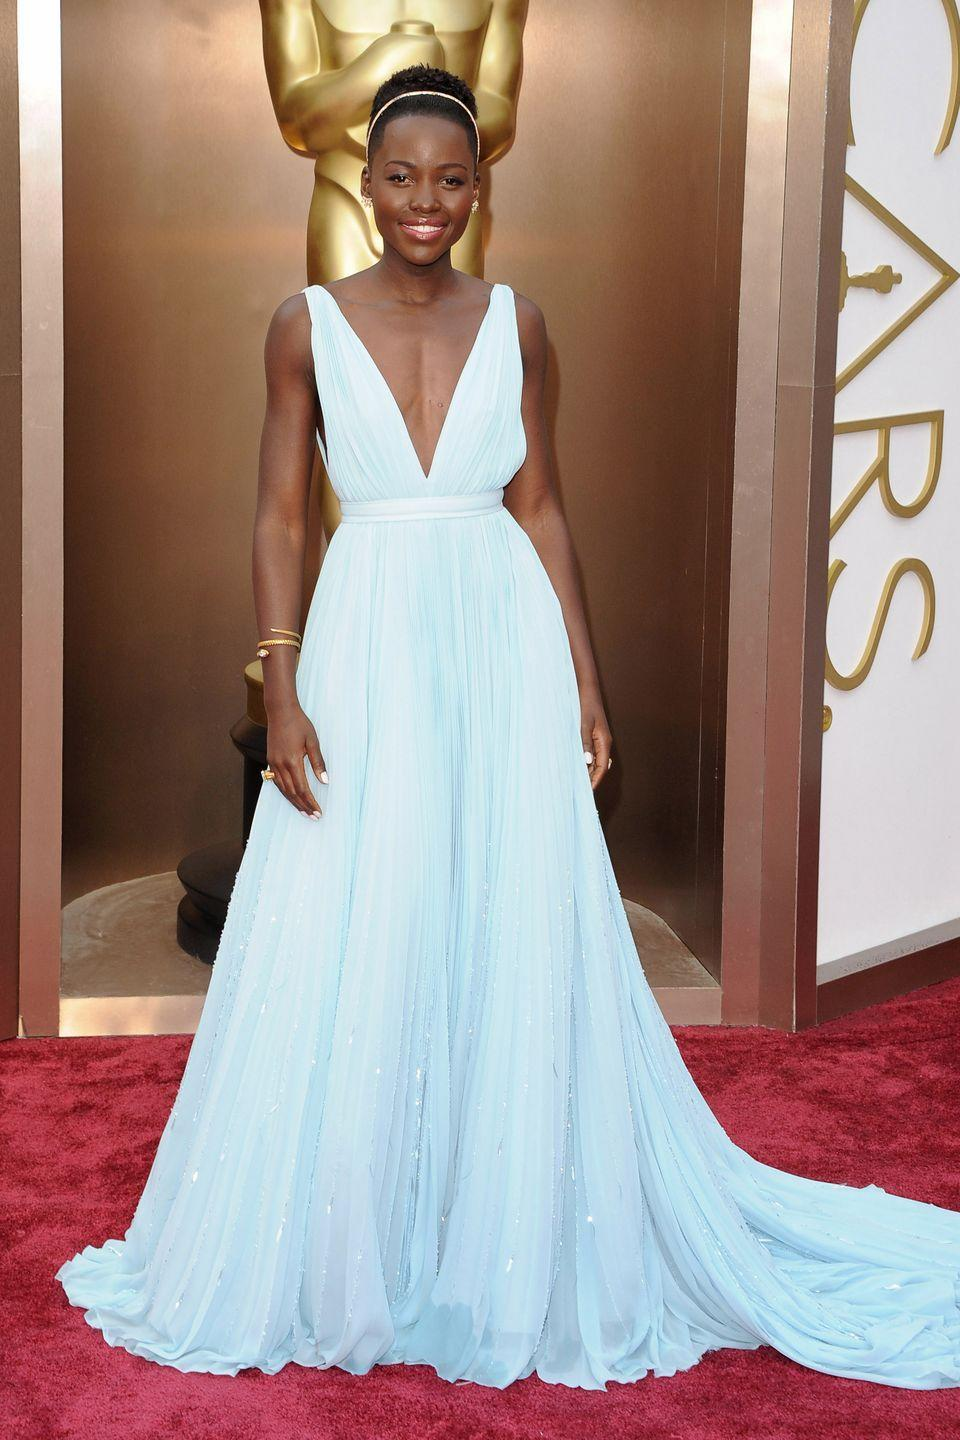 <p>Lupita Nyong'o wore a minimalist version of Cinderella's dress—designed by Prada—to the 86th Academy Awards in 2014, when she won the Oscar for Best Supporting Actress.</p>